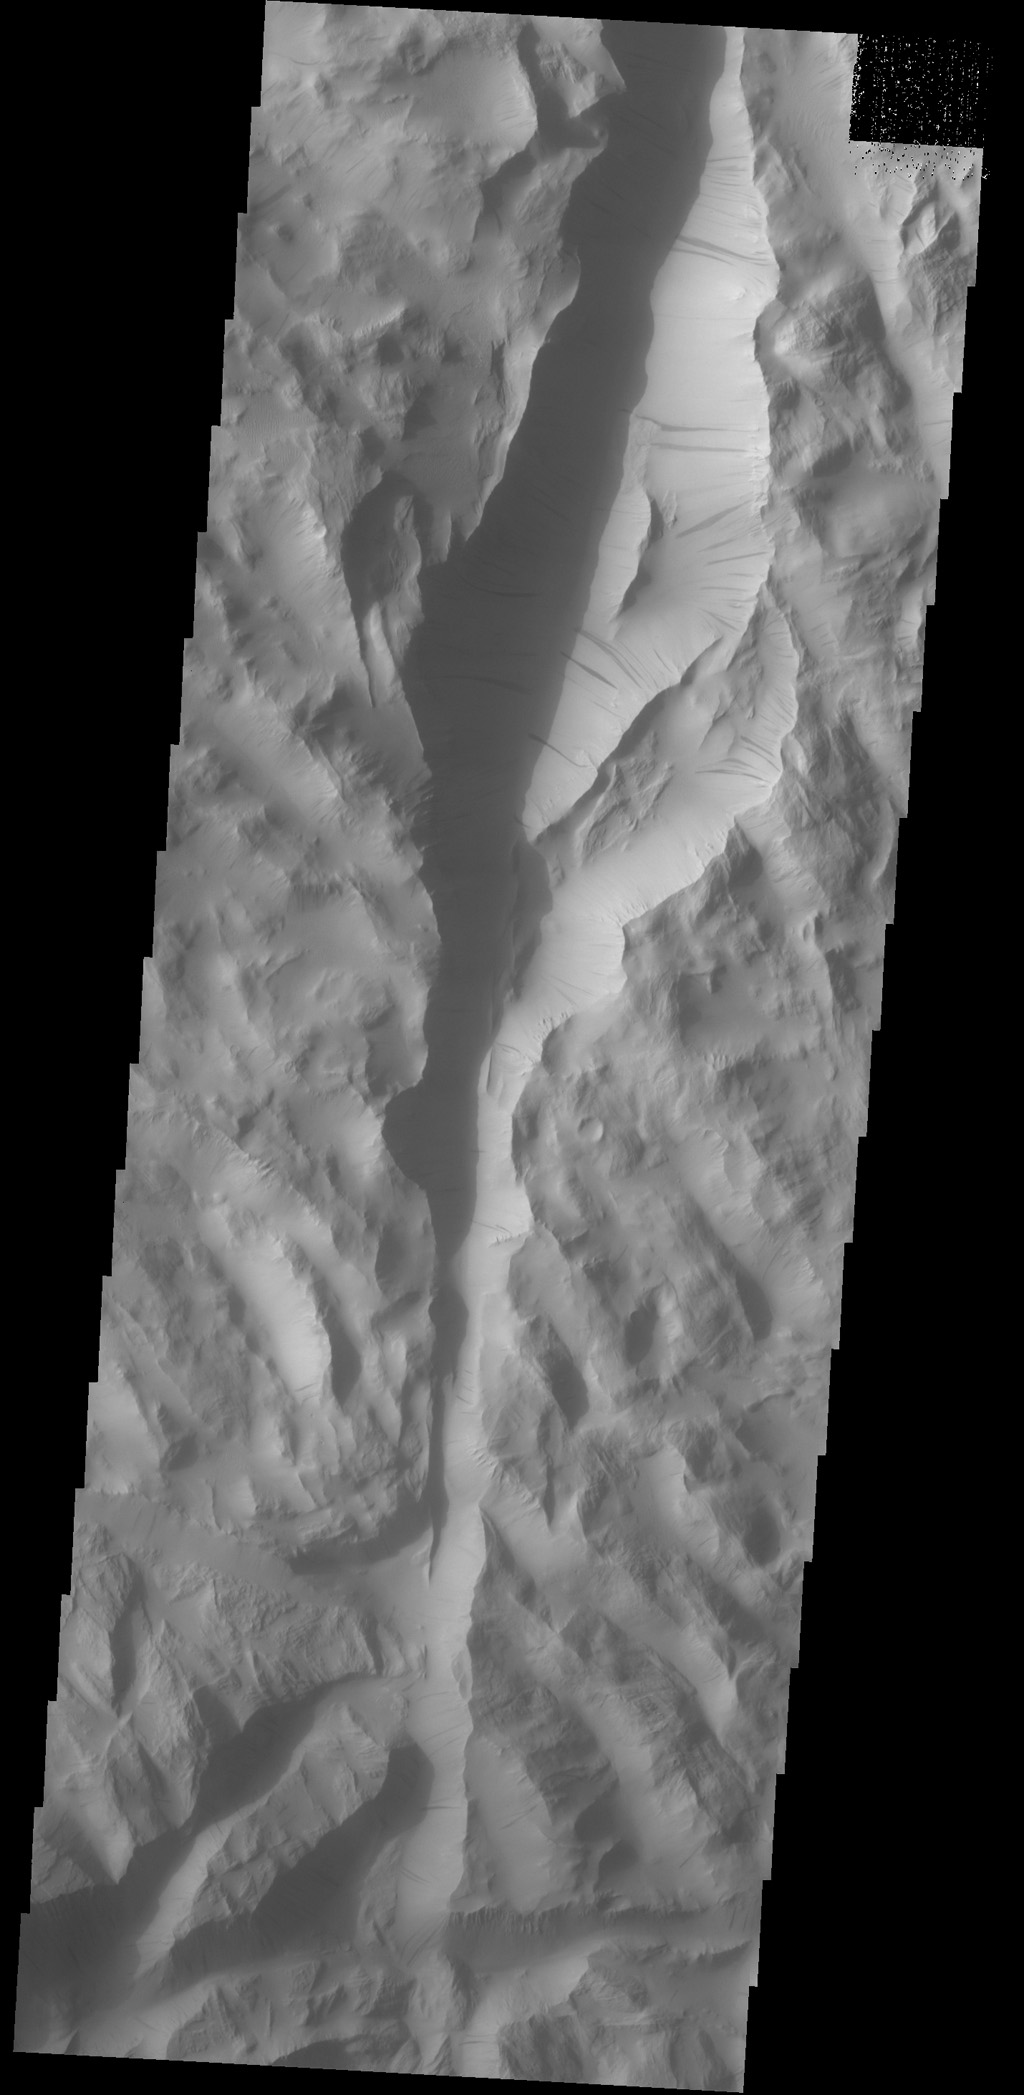 Dark slope streaks are a common feature on the cliff faces of Lycus Sulci as this image from NASA's 2001 Mars Odyssey spacecraft shows.